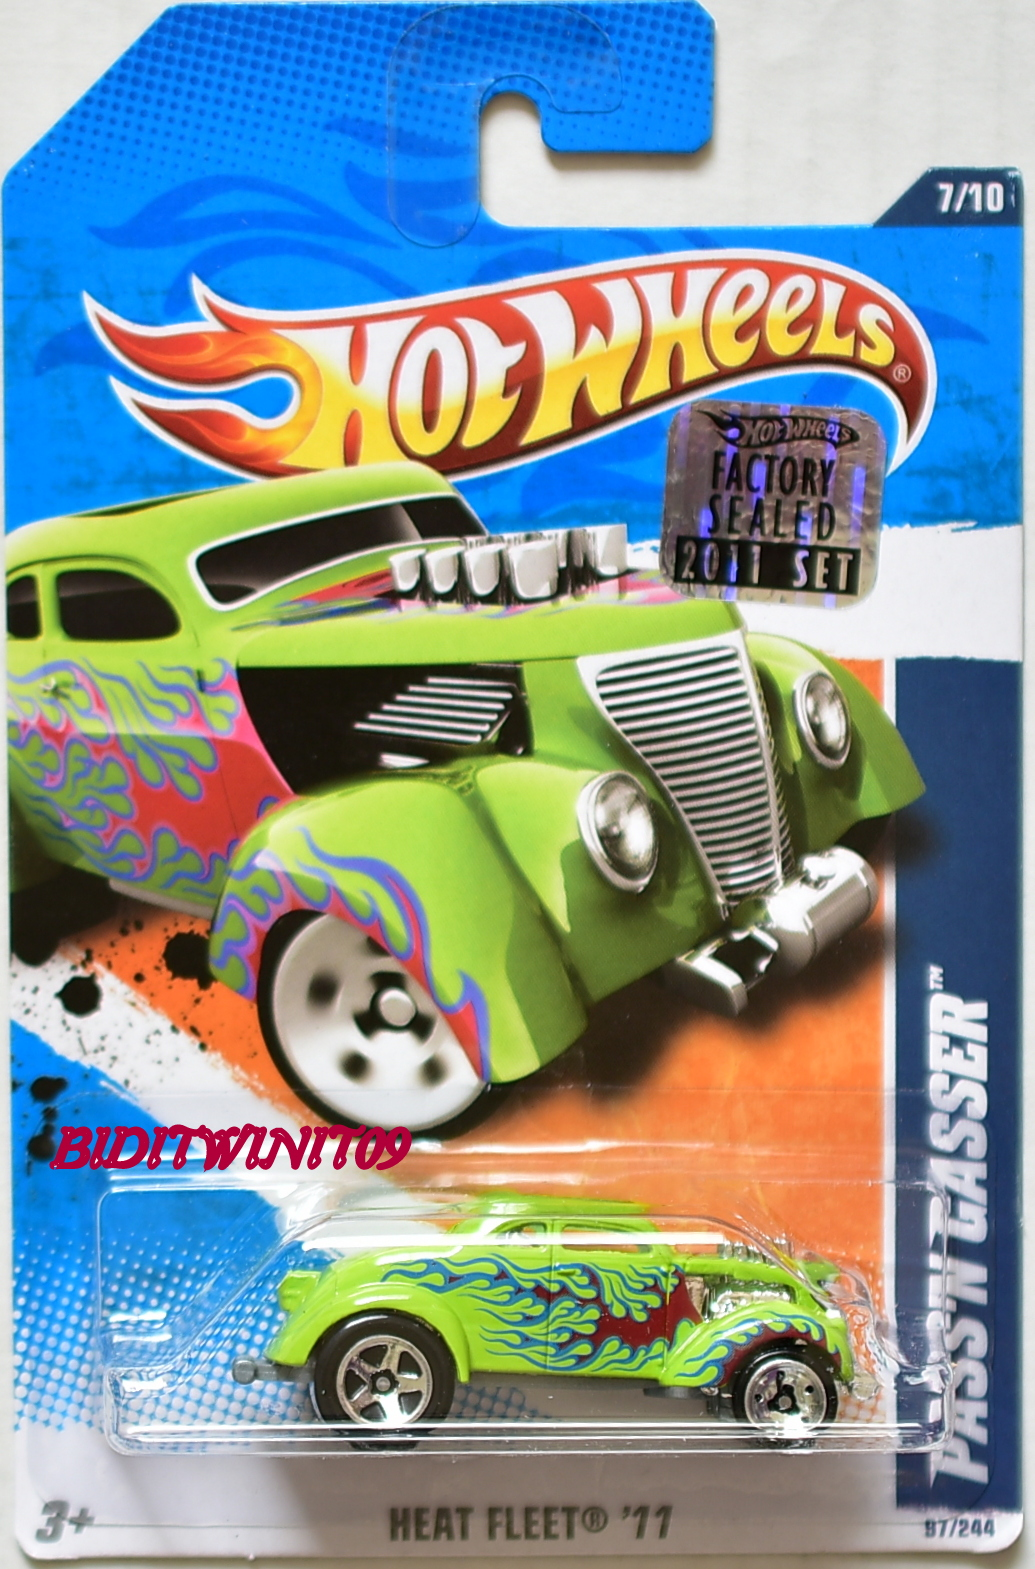 HOT WHEELS 2011 HEAT FLEET PASS'N GASSER GREEN FACTORY SEALED